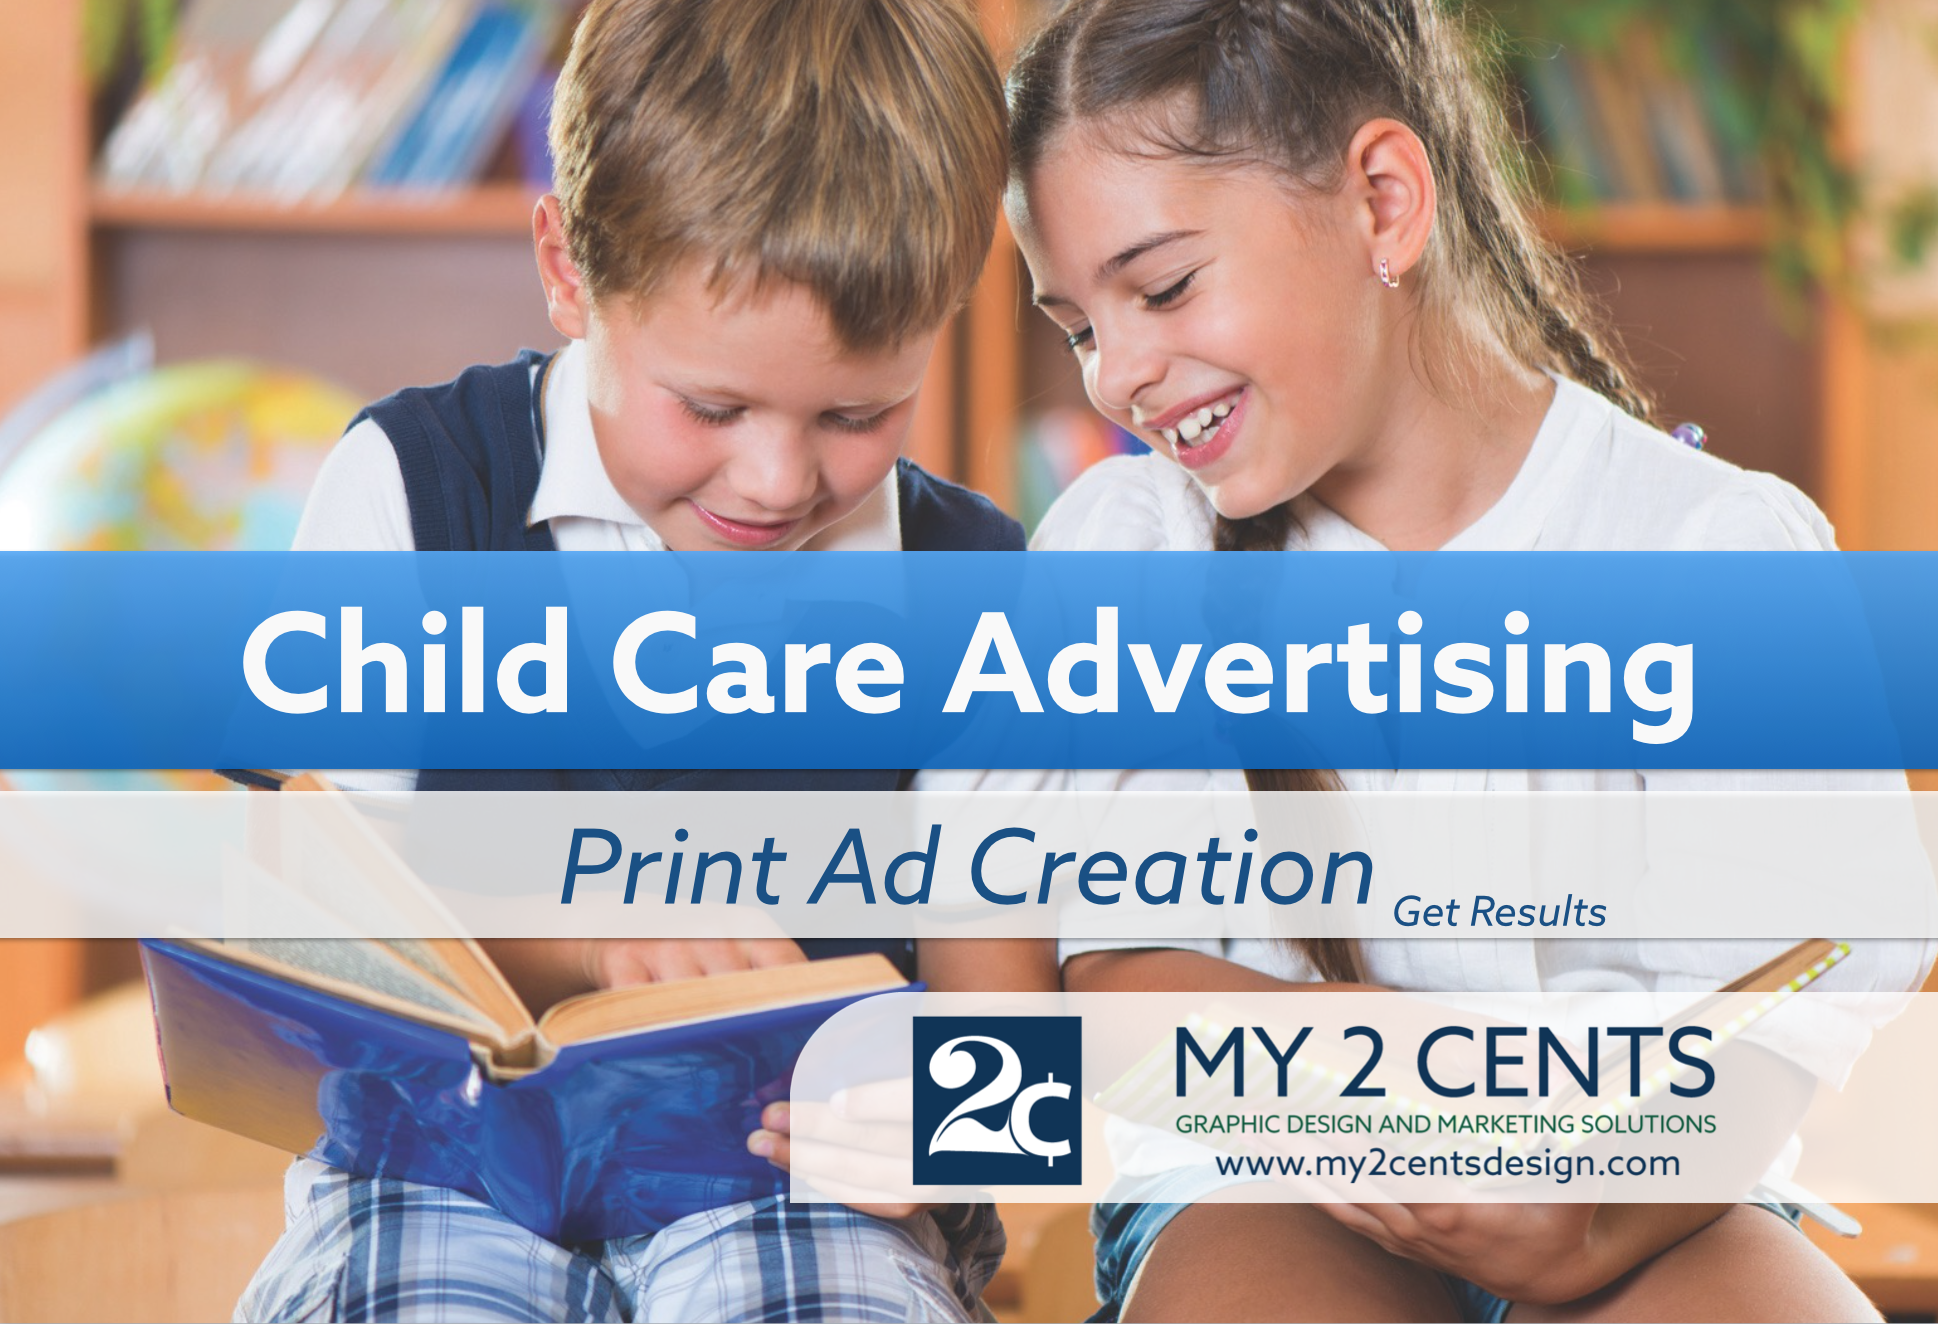 Child Care Advertising | Print Ad Creation Tips | My 2 Cents Design